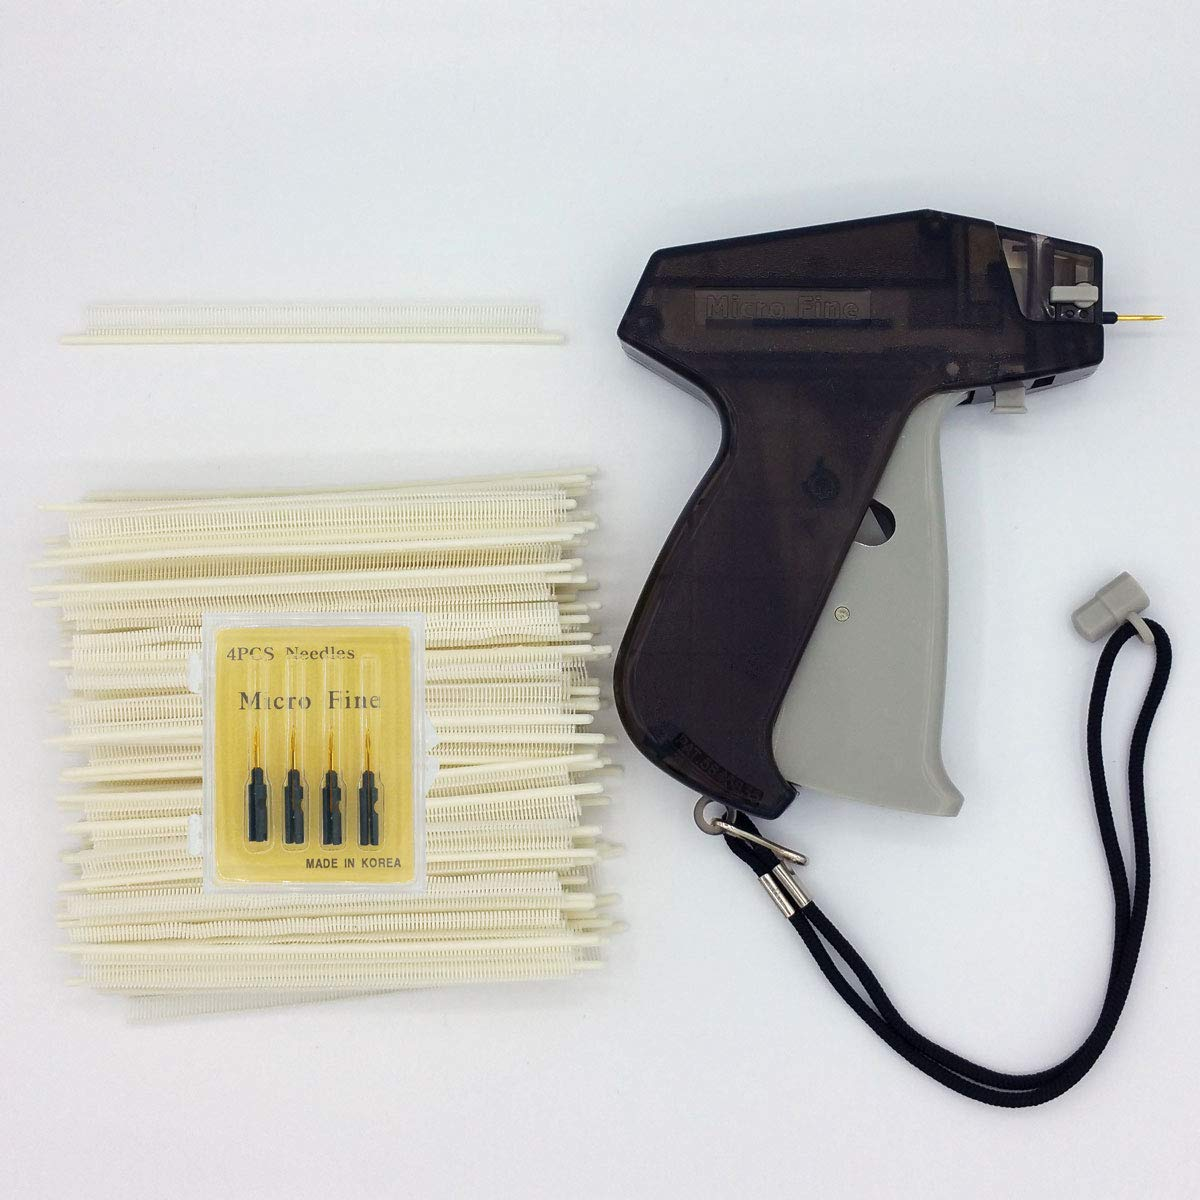 Amram Hawk Micro Fine Tagging Gun Kit for Clothing Includes 10000 11/64 Inch Attachments 5 Needles Easy to Assemble Load and Use by AMRAM